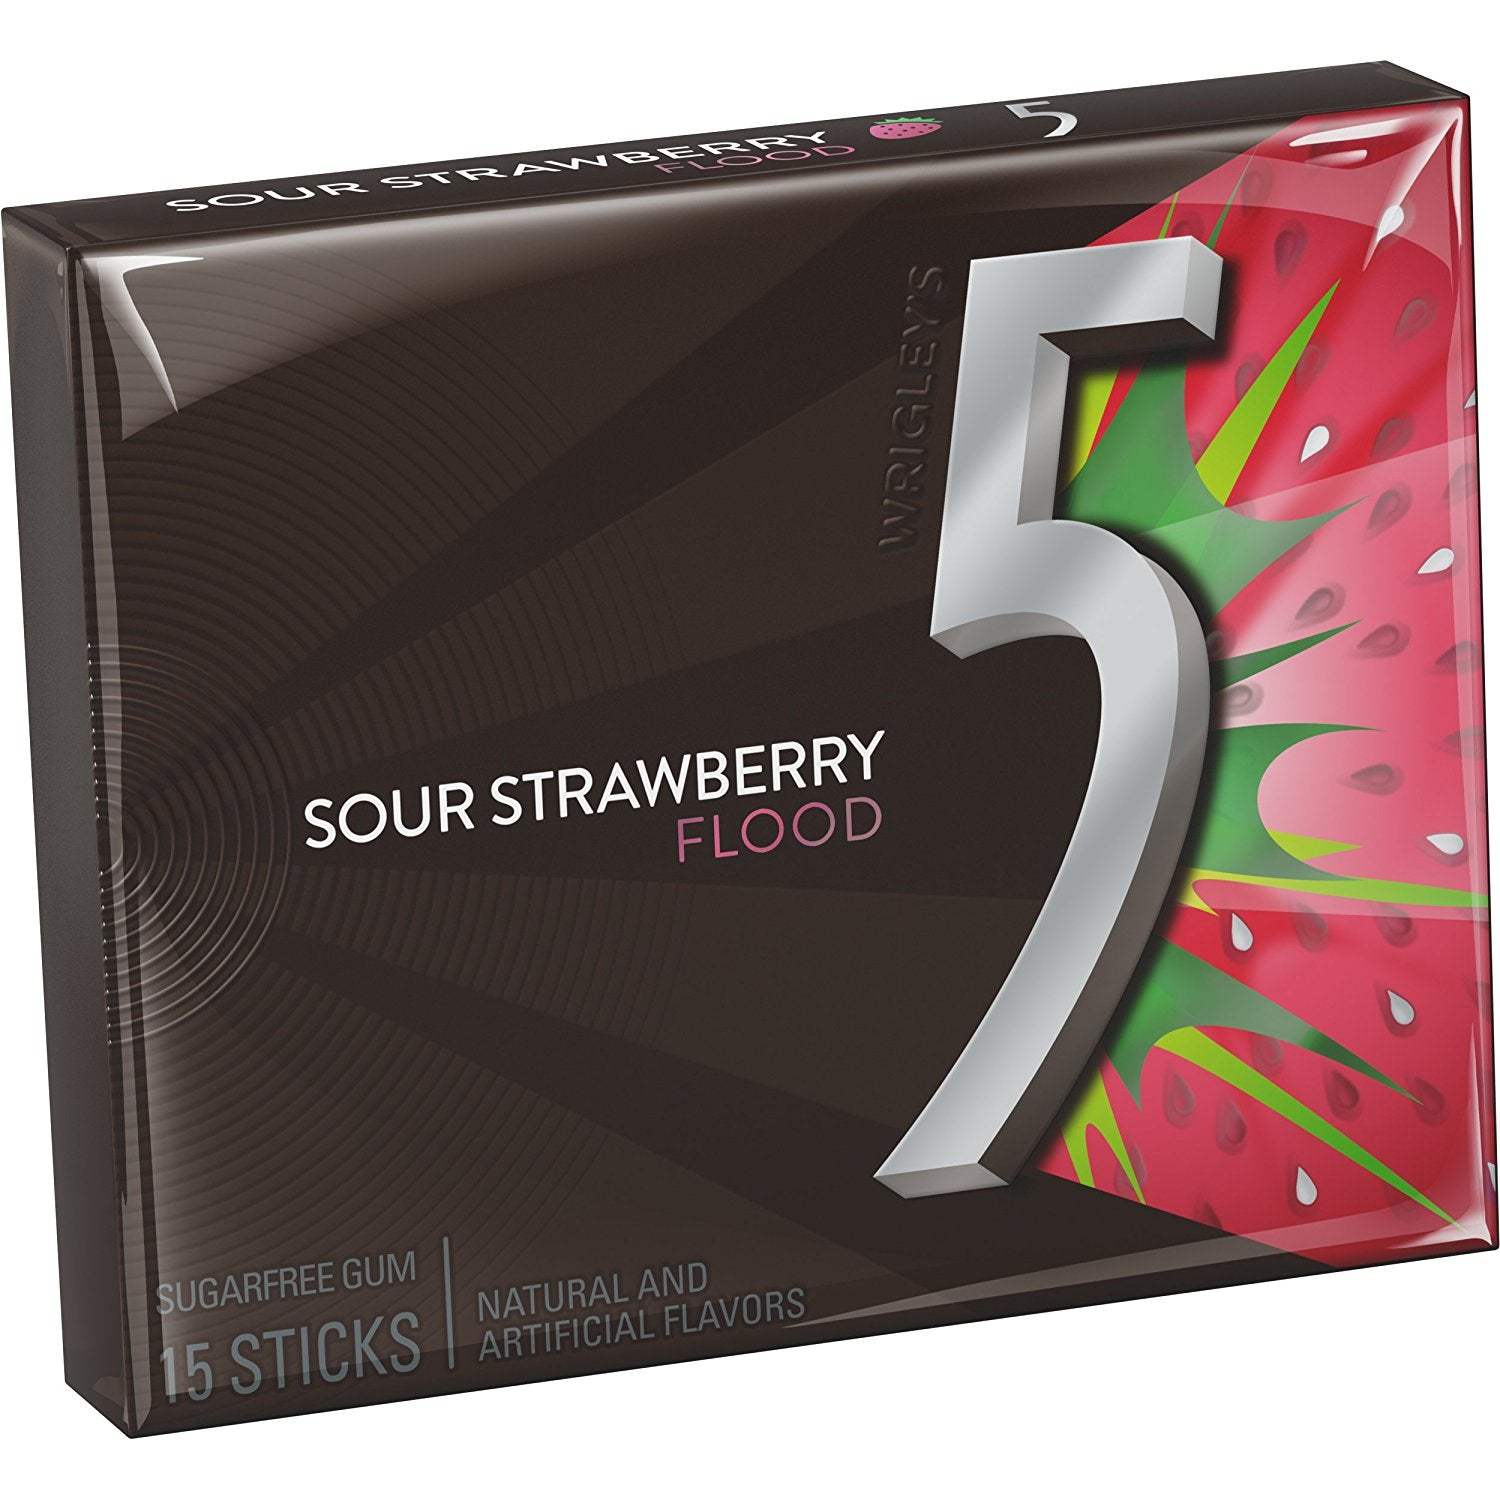 5 Gum Strawberry Flood 10 x 15 Sticks - Remas